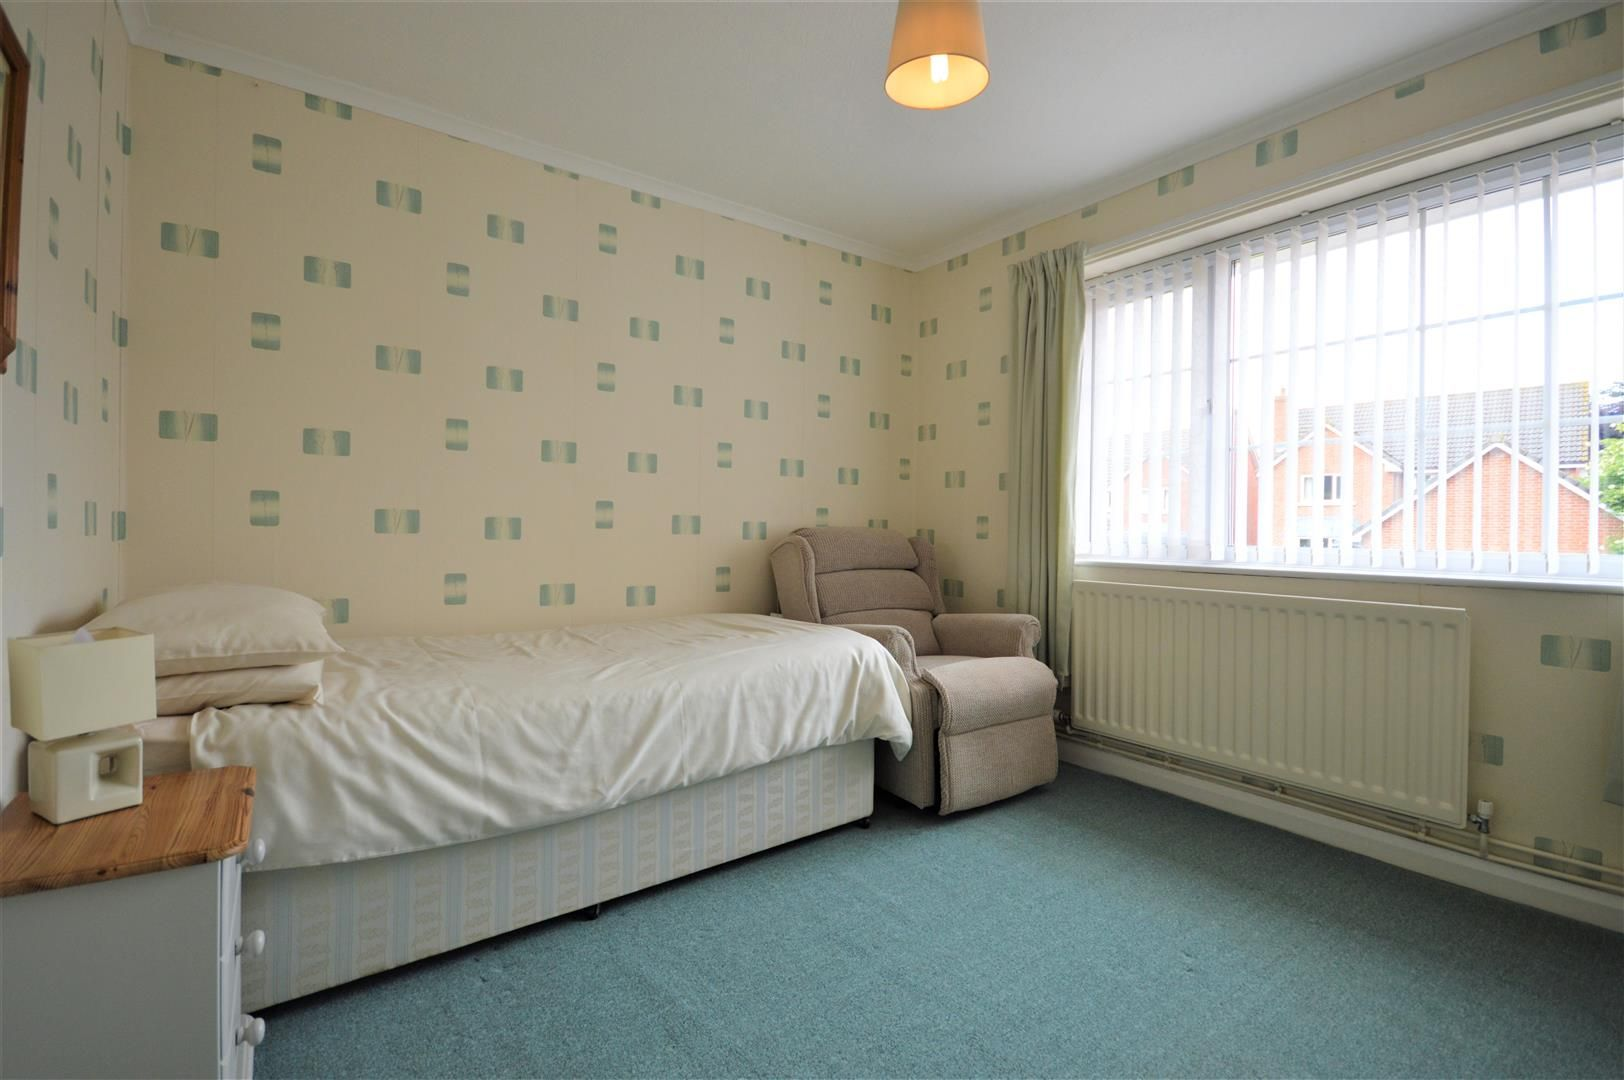 2 bed semi-detached-bungalow for sale in Leominster 6